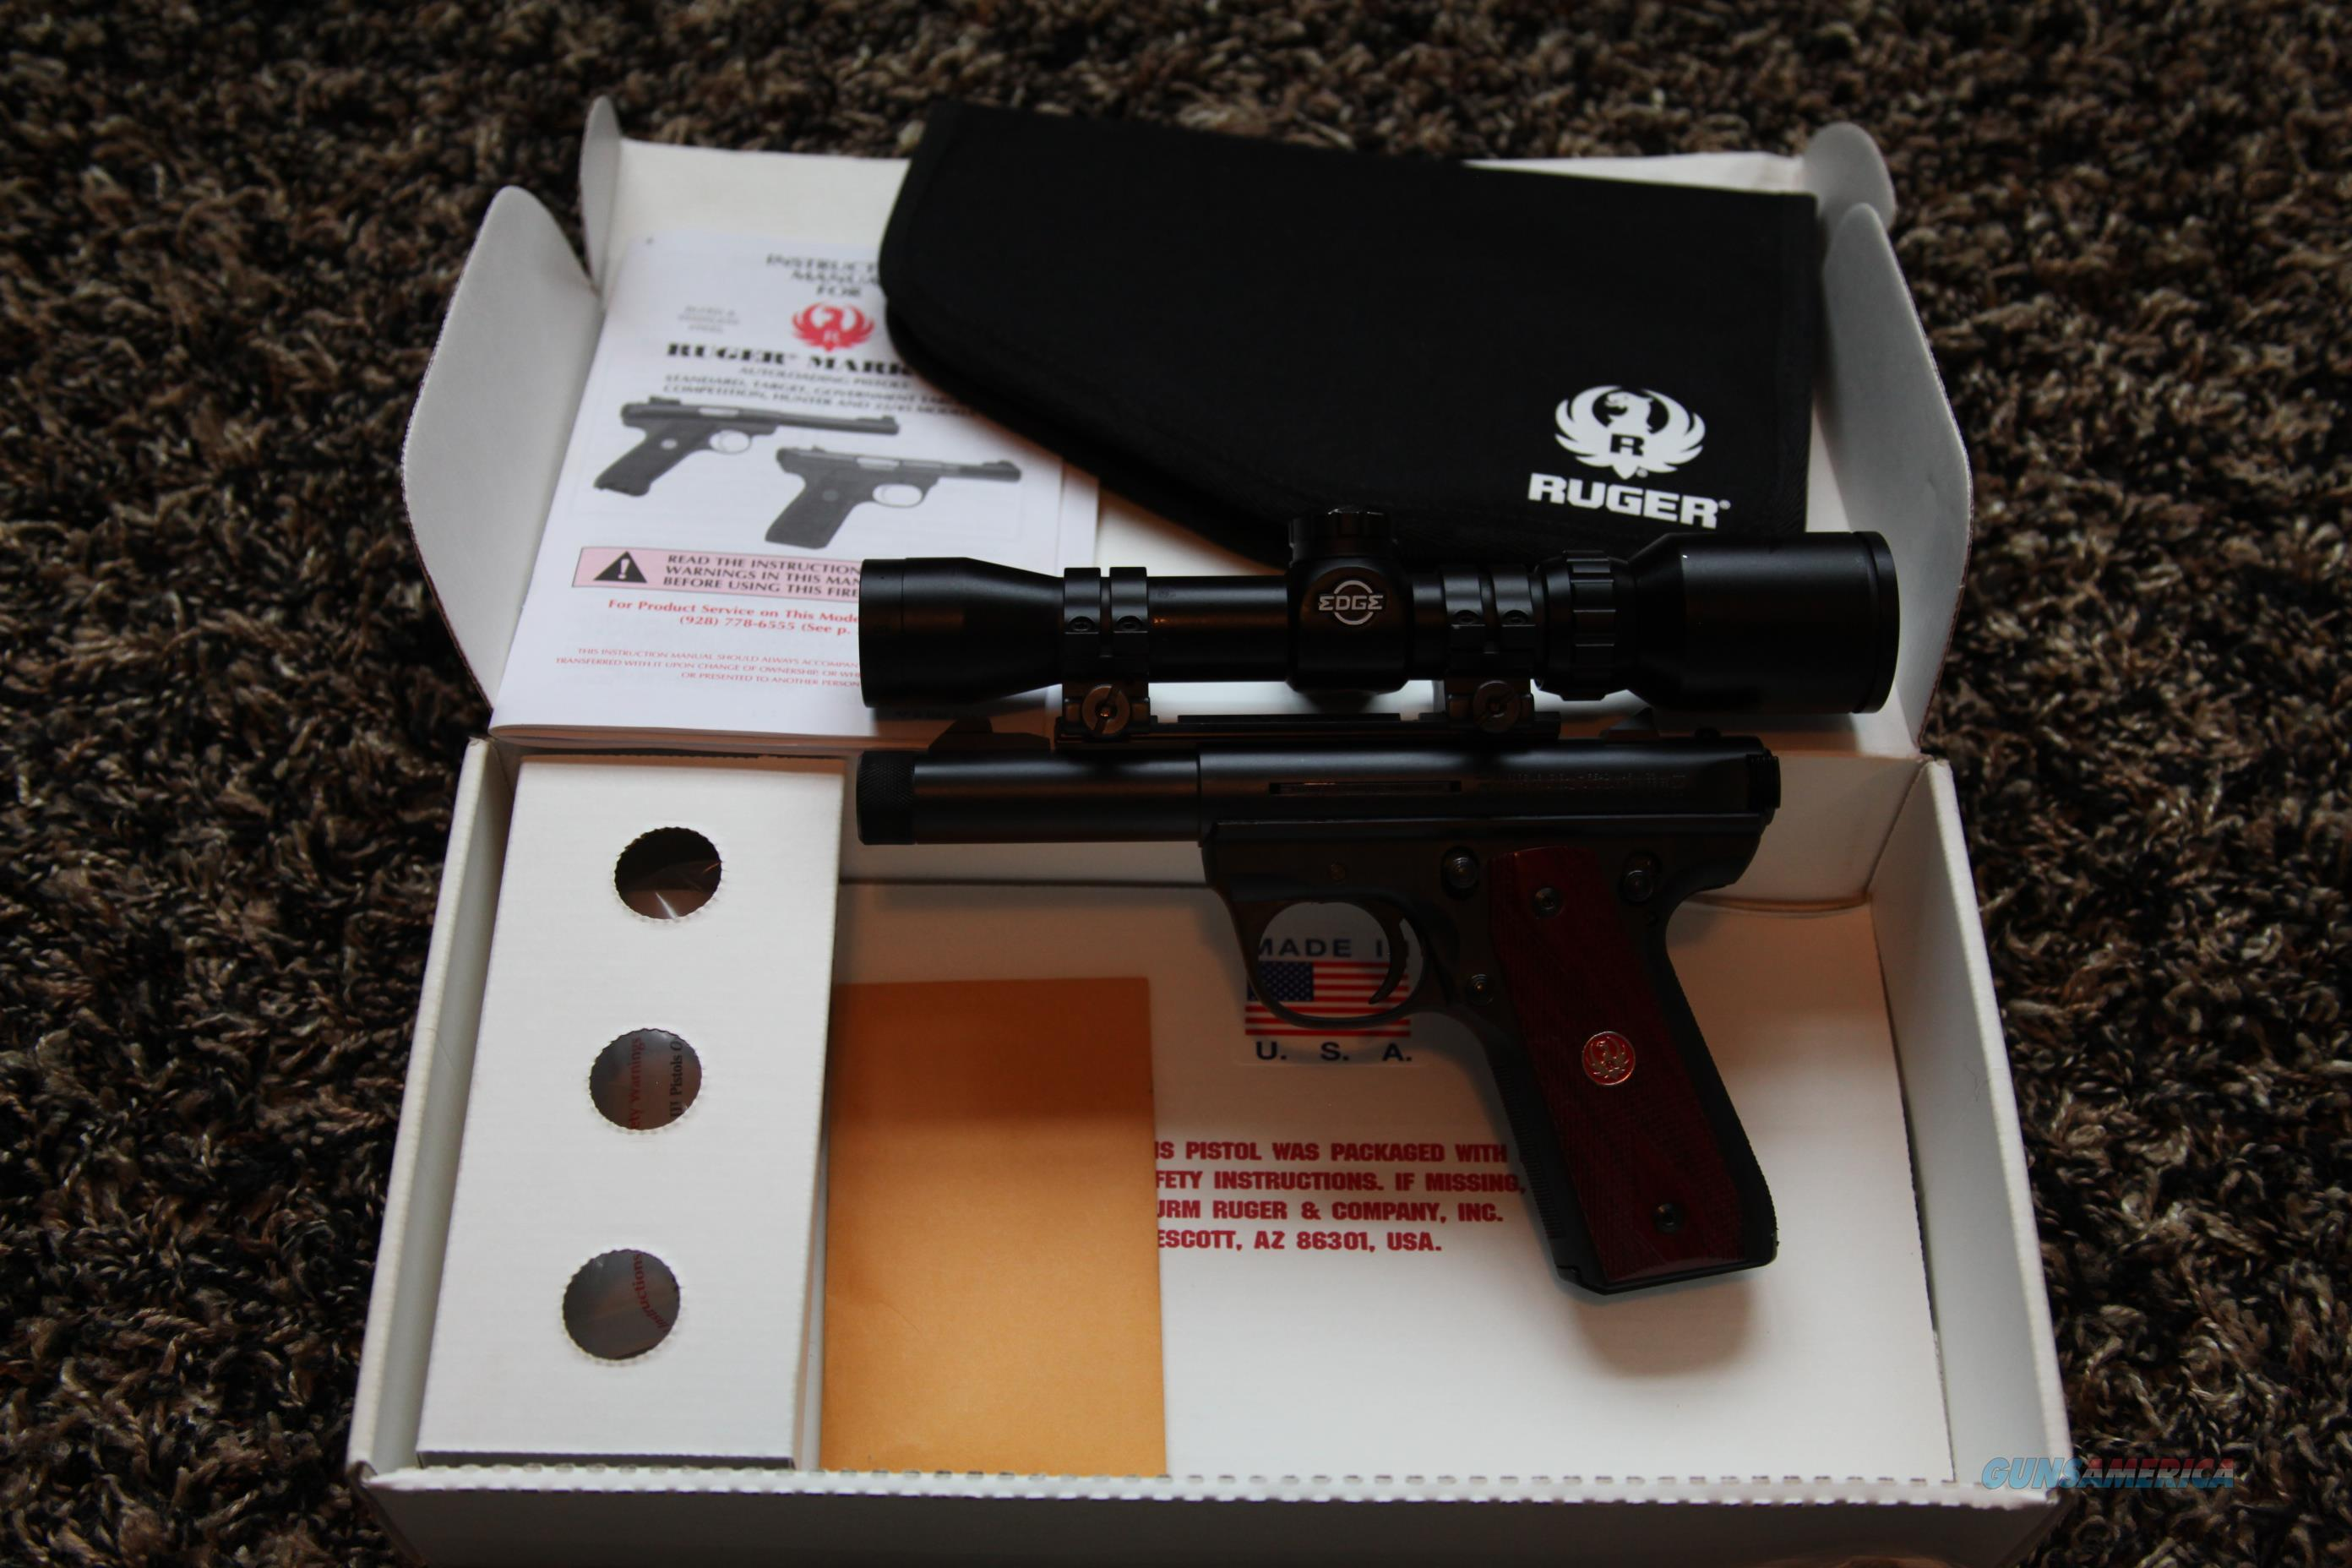 RUGER 22/45 THREADED BARREL WITH SCOPE  Guns > Pistols > Ruger Semi-Auto Pistols > 22/45